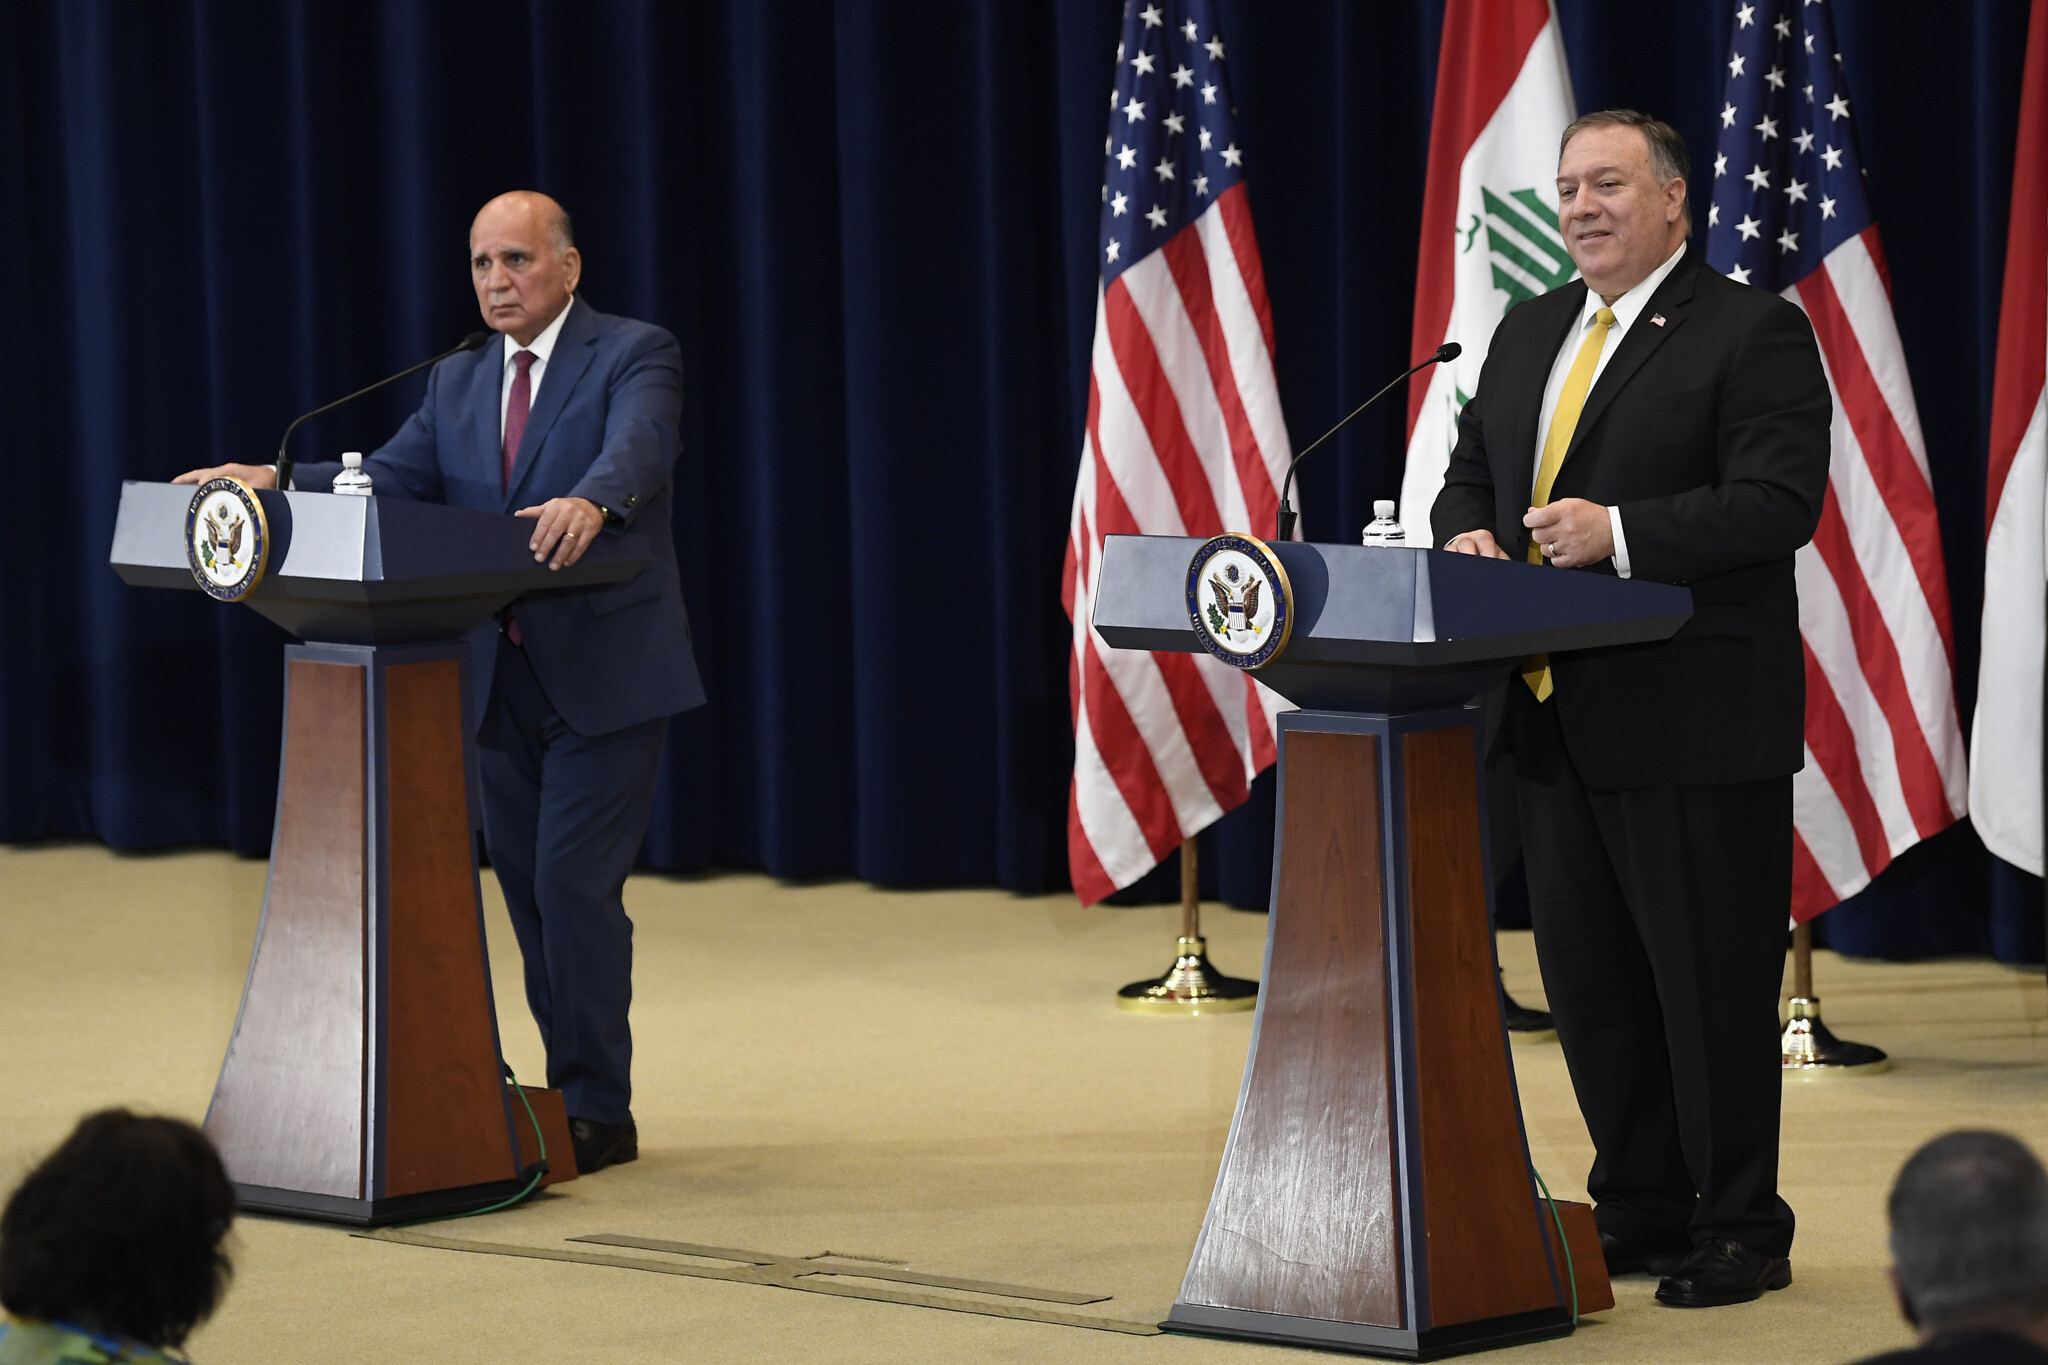 President Trump discusses pulling troops from Iraq